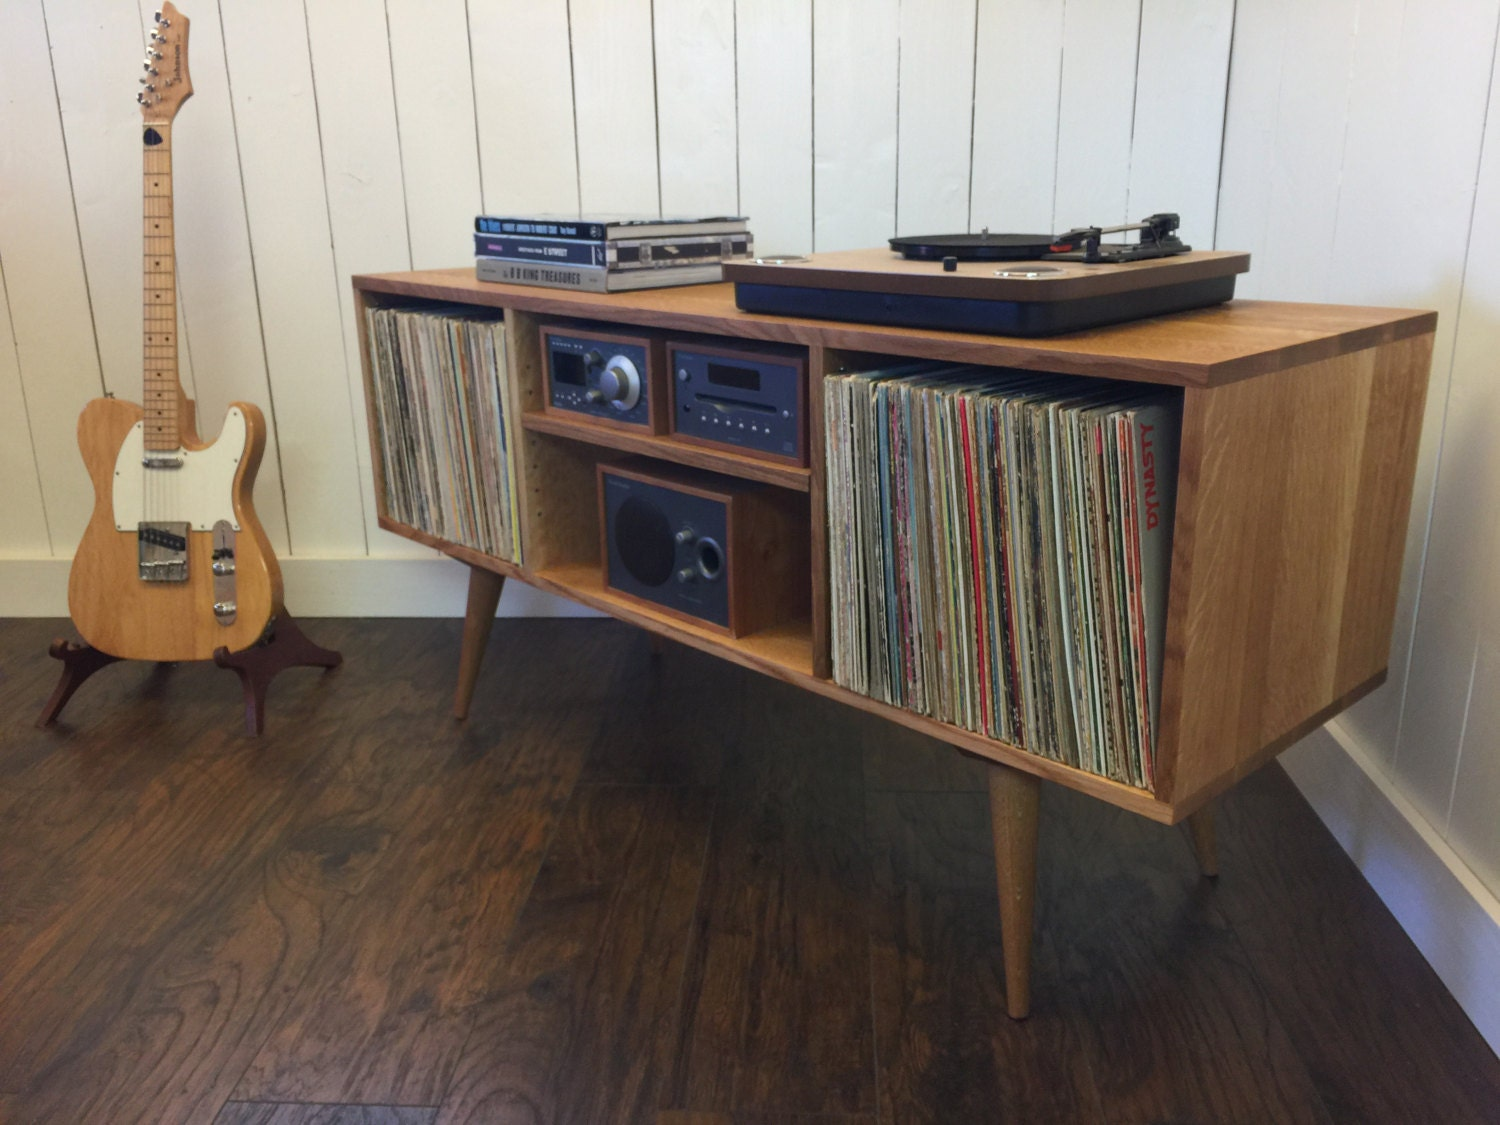 Design Record Player Cabinet mid century modern turntable stand record player cabinet